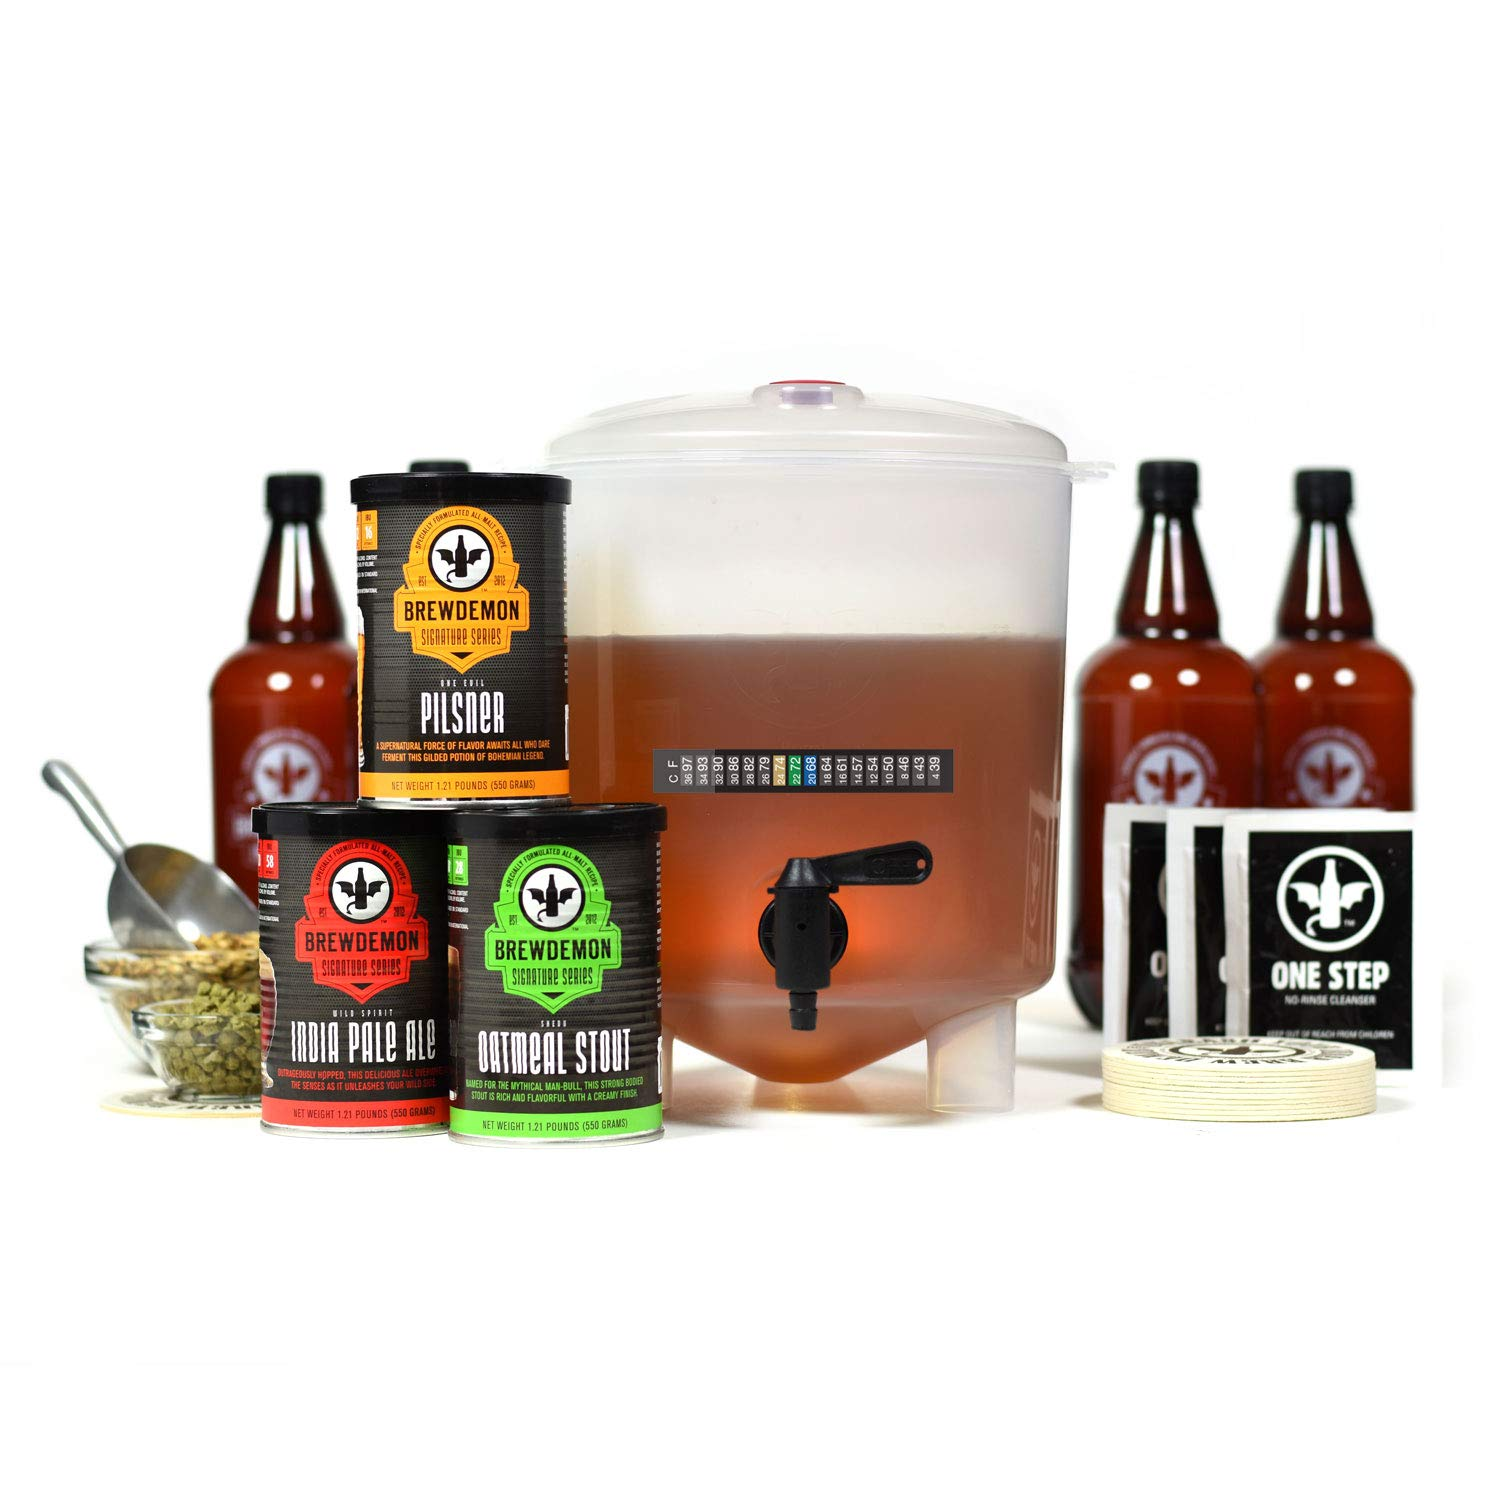 BrewDemon Craft Beer Kit with Bottles - Conical Fermenter Eliminates Sediment and Makes Great Tasting Home Made Beer - 1 gallon pilsner, stout, and pale ale kit